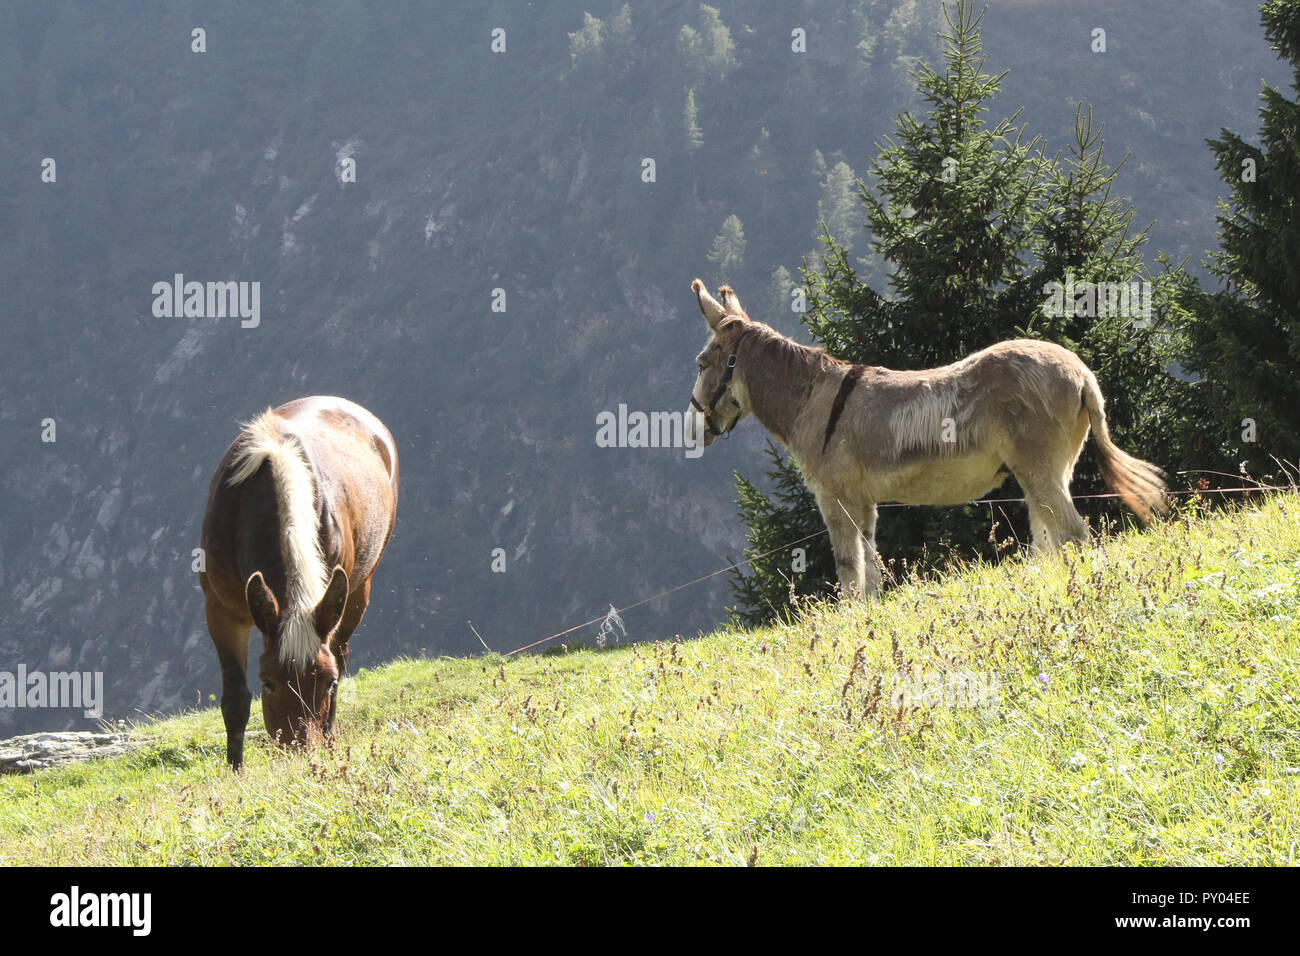 A brown skin and white mane pony horse grazing in a pasture next to a  white and grey donkey during a sunny summer day in the Alps mountains, Italy Stock Photo